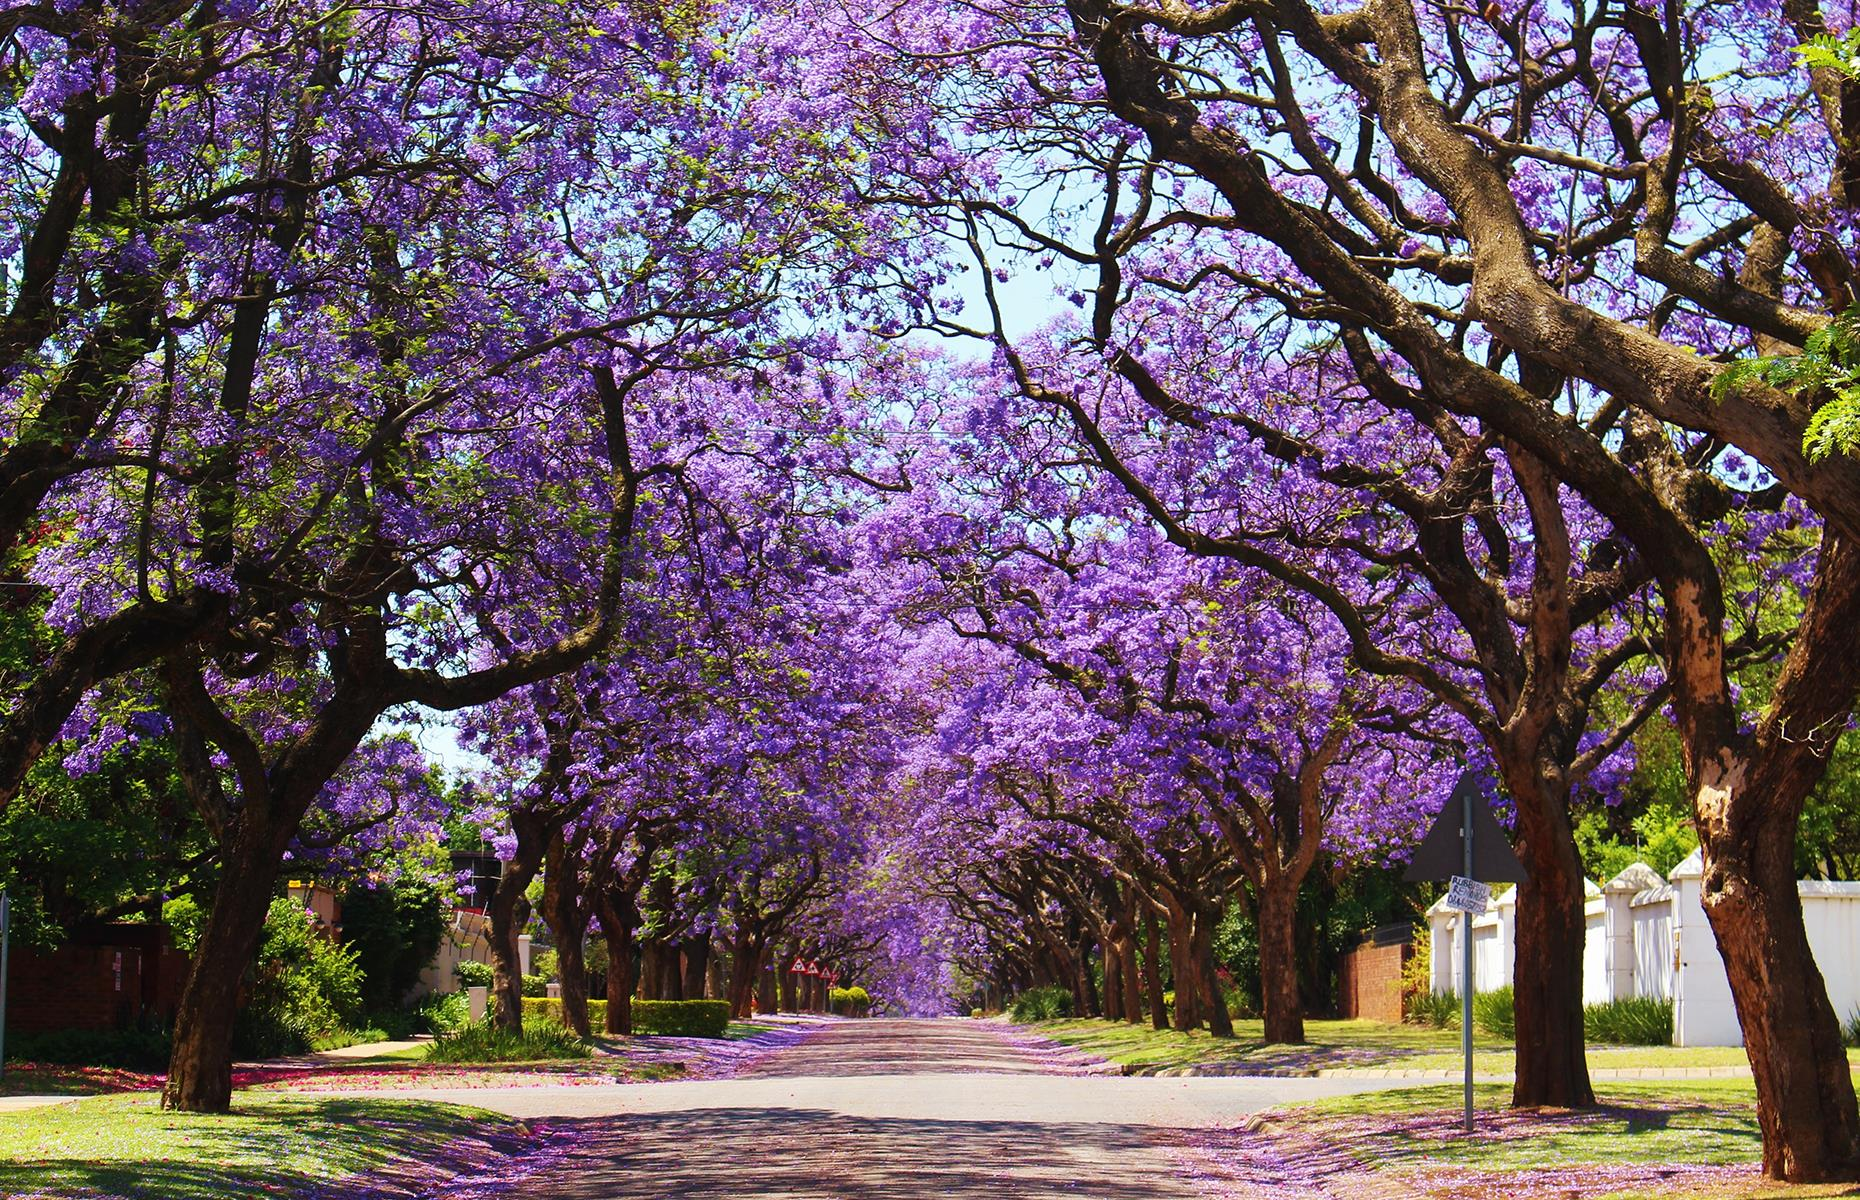 Slide 33 of 41: Late-September to late-November is the time to visit South Africa if you want to catch a glimpse of the jacaranda trees' annual floral display. Boasting mostly purple, fragrant blooms (although you may spot some trees with white flowers), jacarandas can mostly be found in Pretoria and Johannesburg. In fact, it's thought that there are more than 70,000 jacarandas in Pretoria alone. These are the world's most beautiful trees.